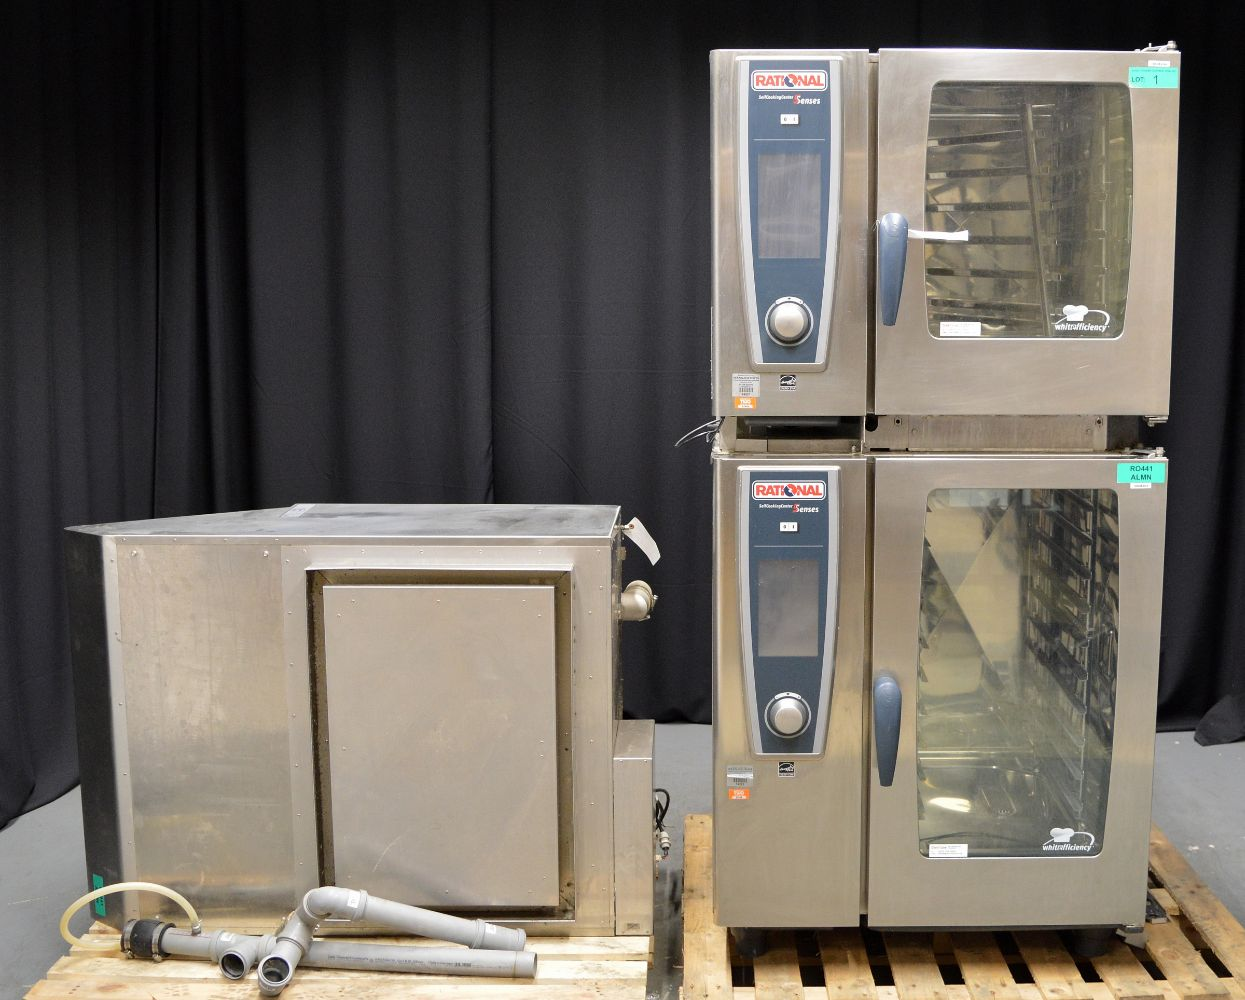 Commercial Catering Equipment to include Rational Combi Ovens, Williams Refrigerators, Ice Cream Machines & Much More